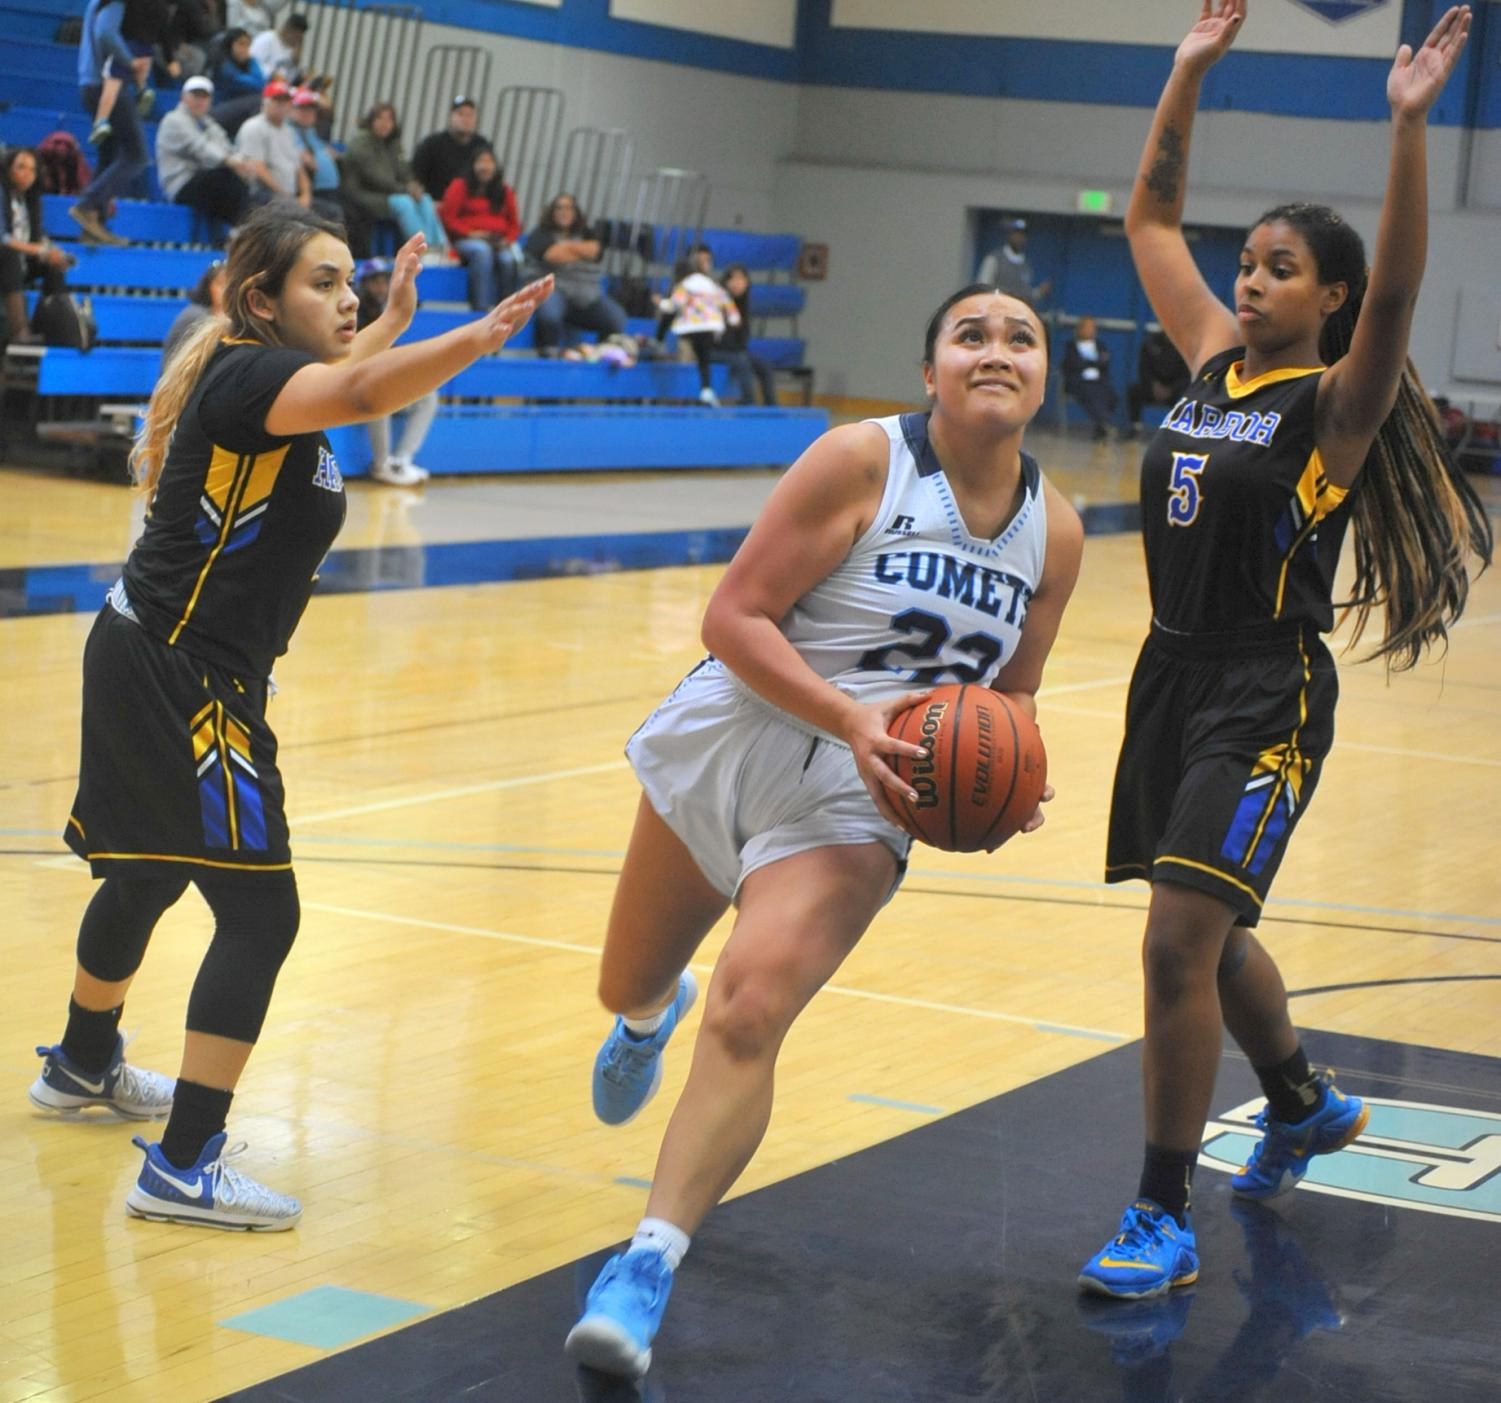 Jahna Maramba drives to the basket during a basketball game in the gymnasium